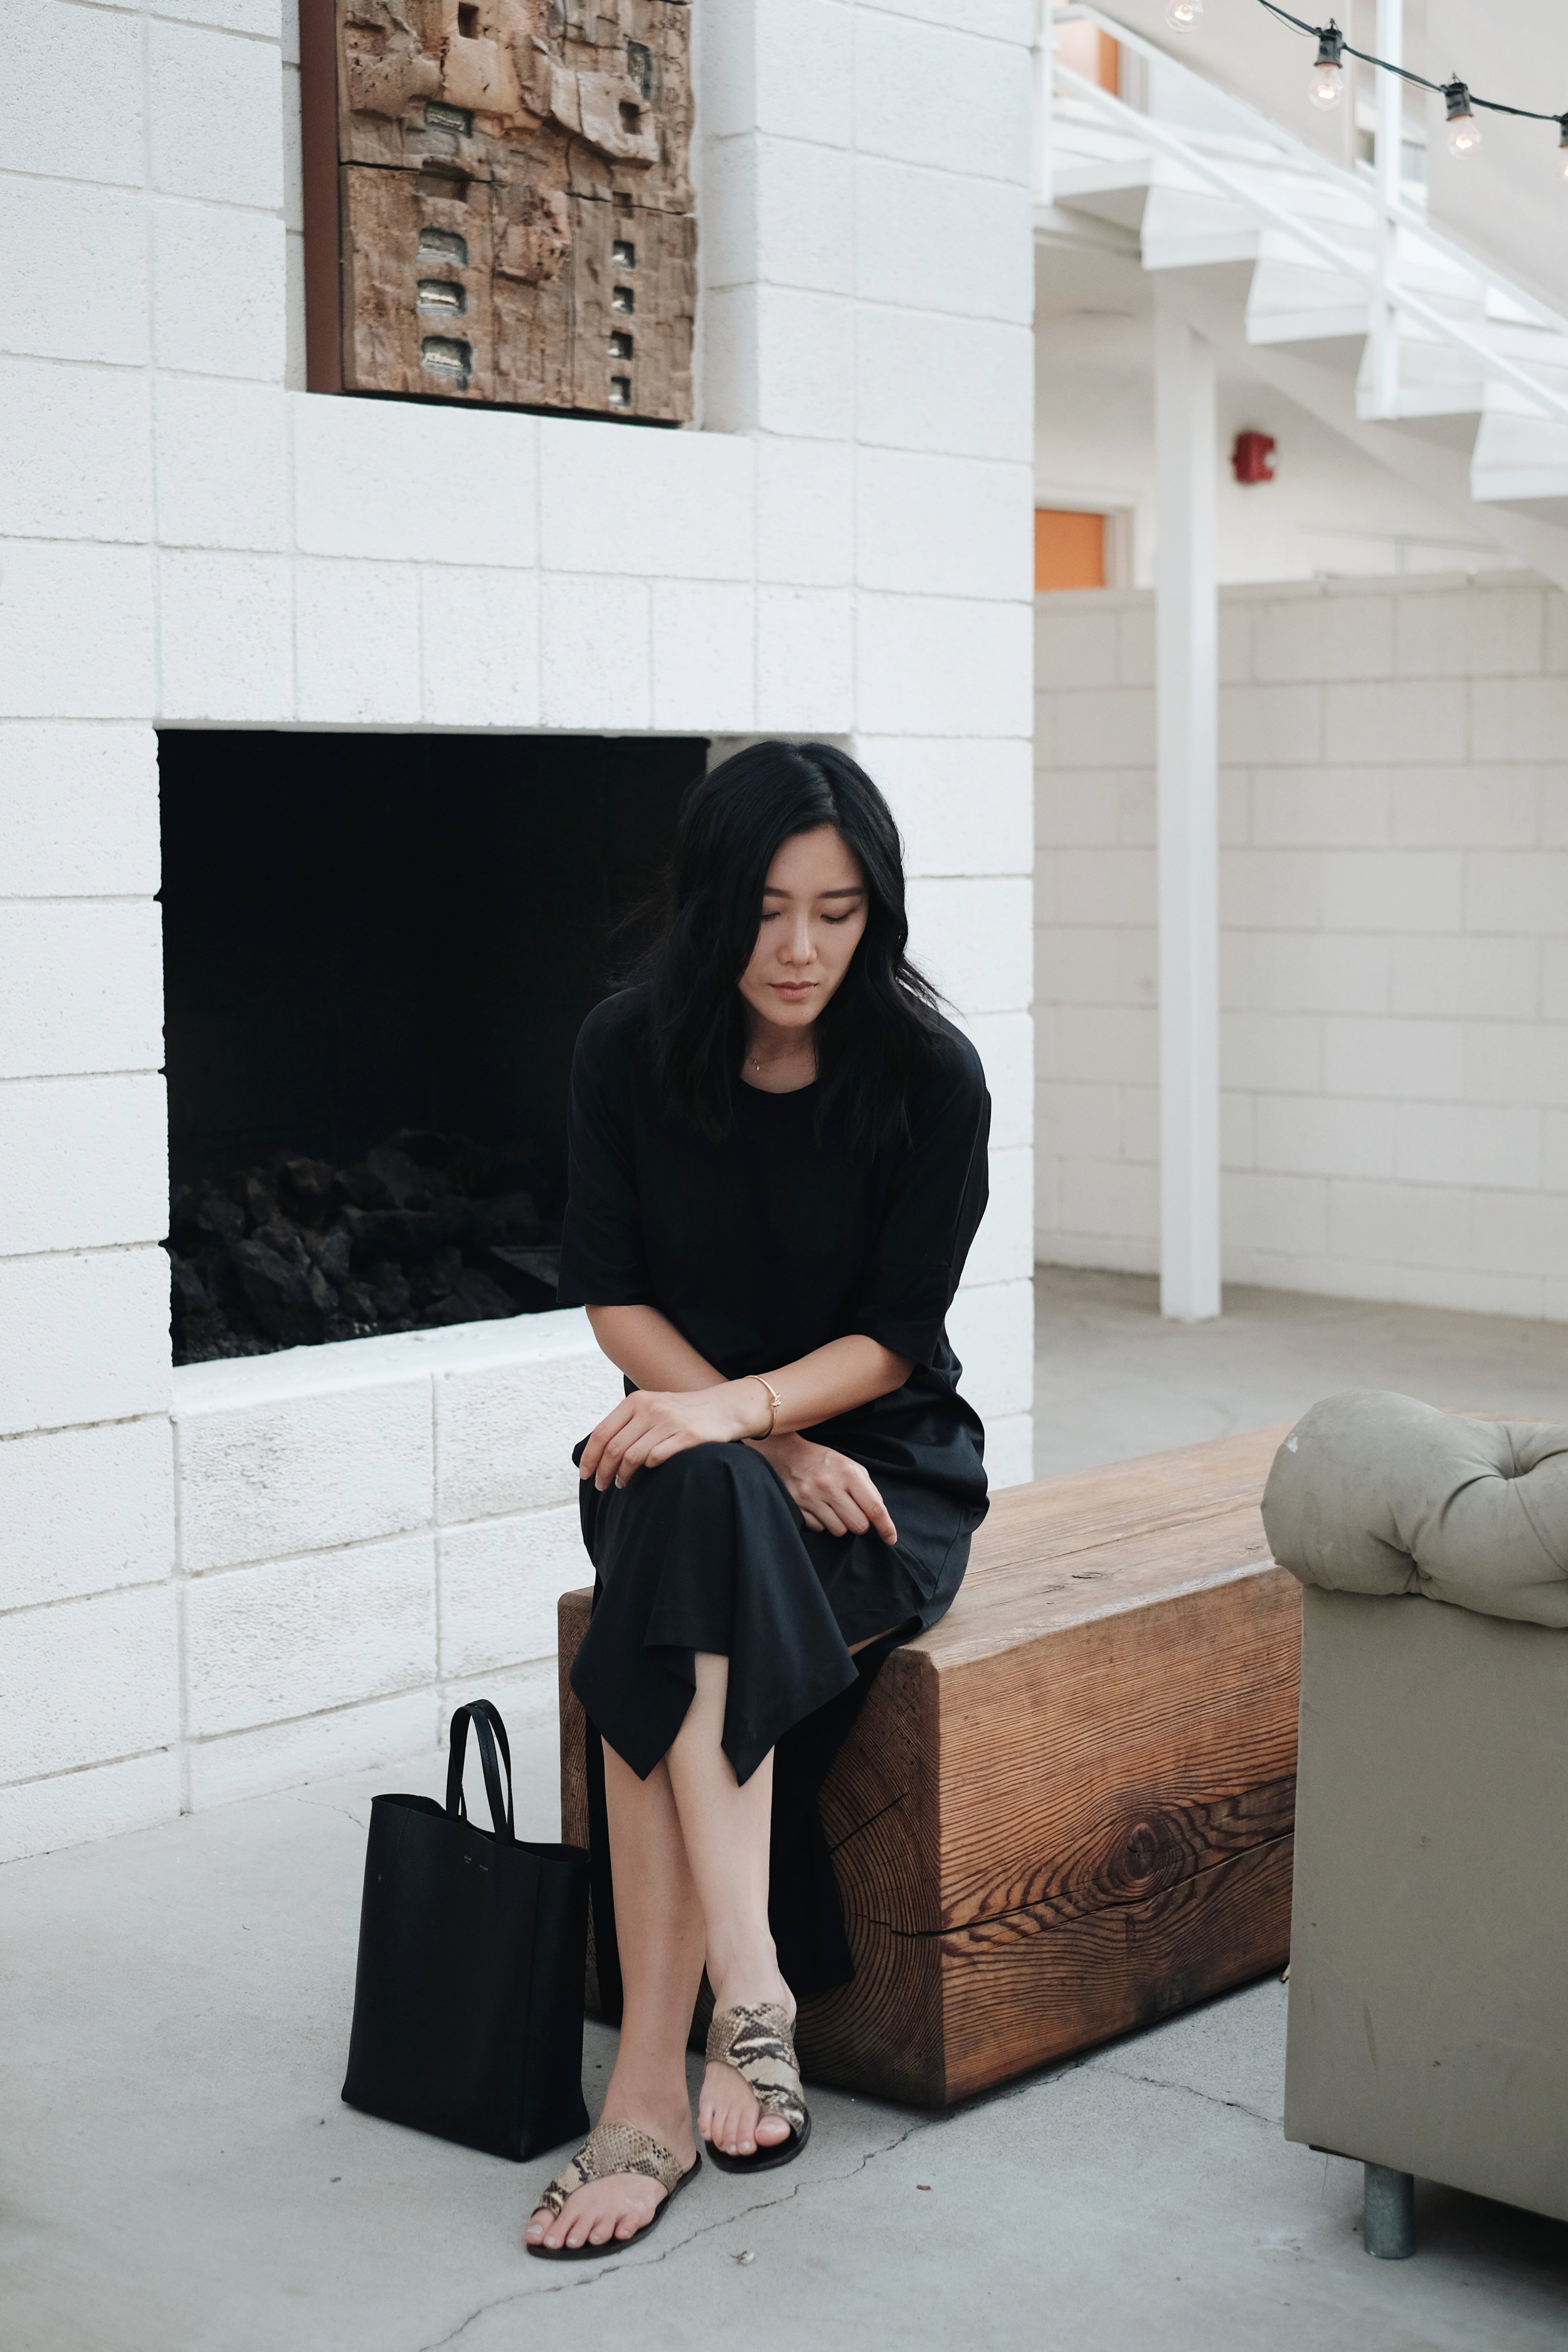 LEMAIRE   Dress  (More  here  ) /CÉLINE   Cuff  and   Bag  / ATP ATELIER   Sandals